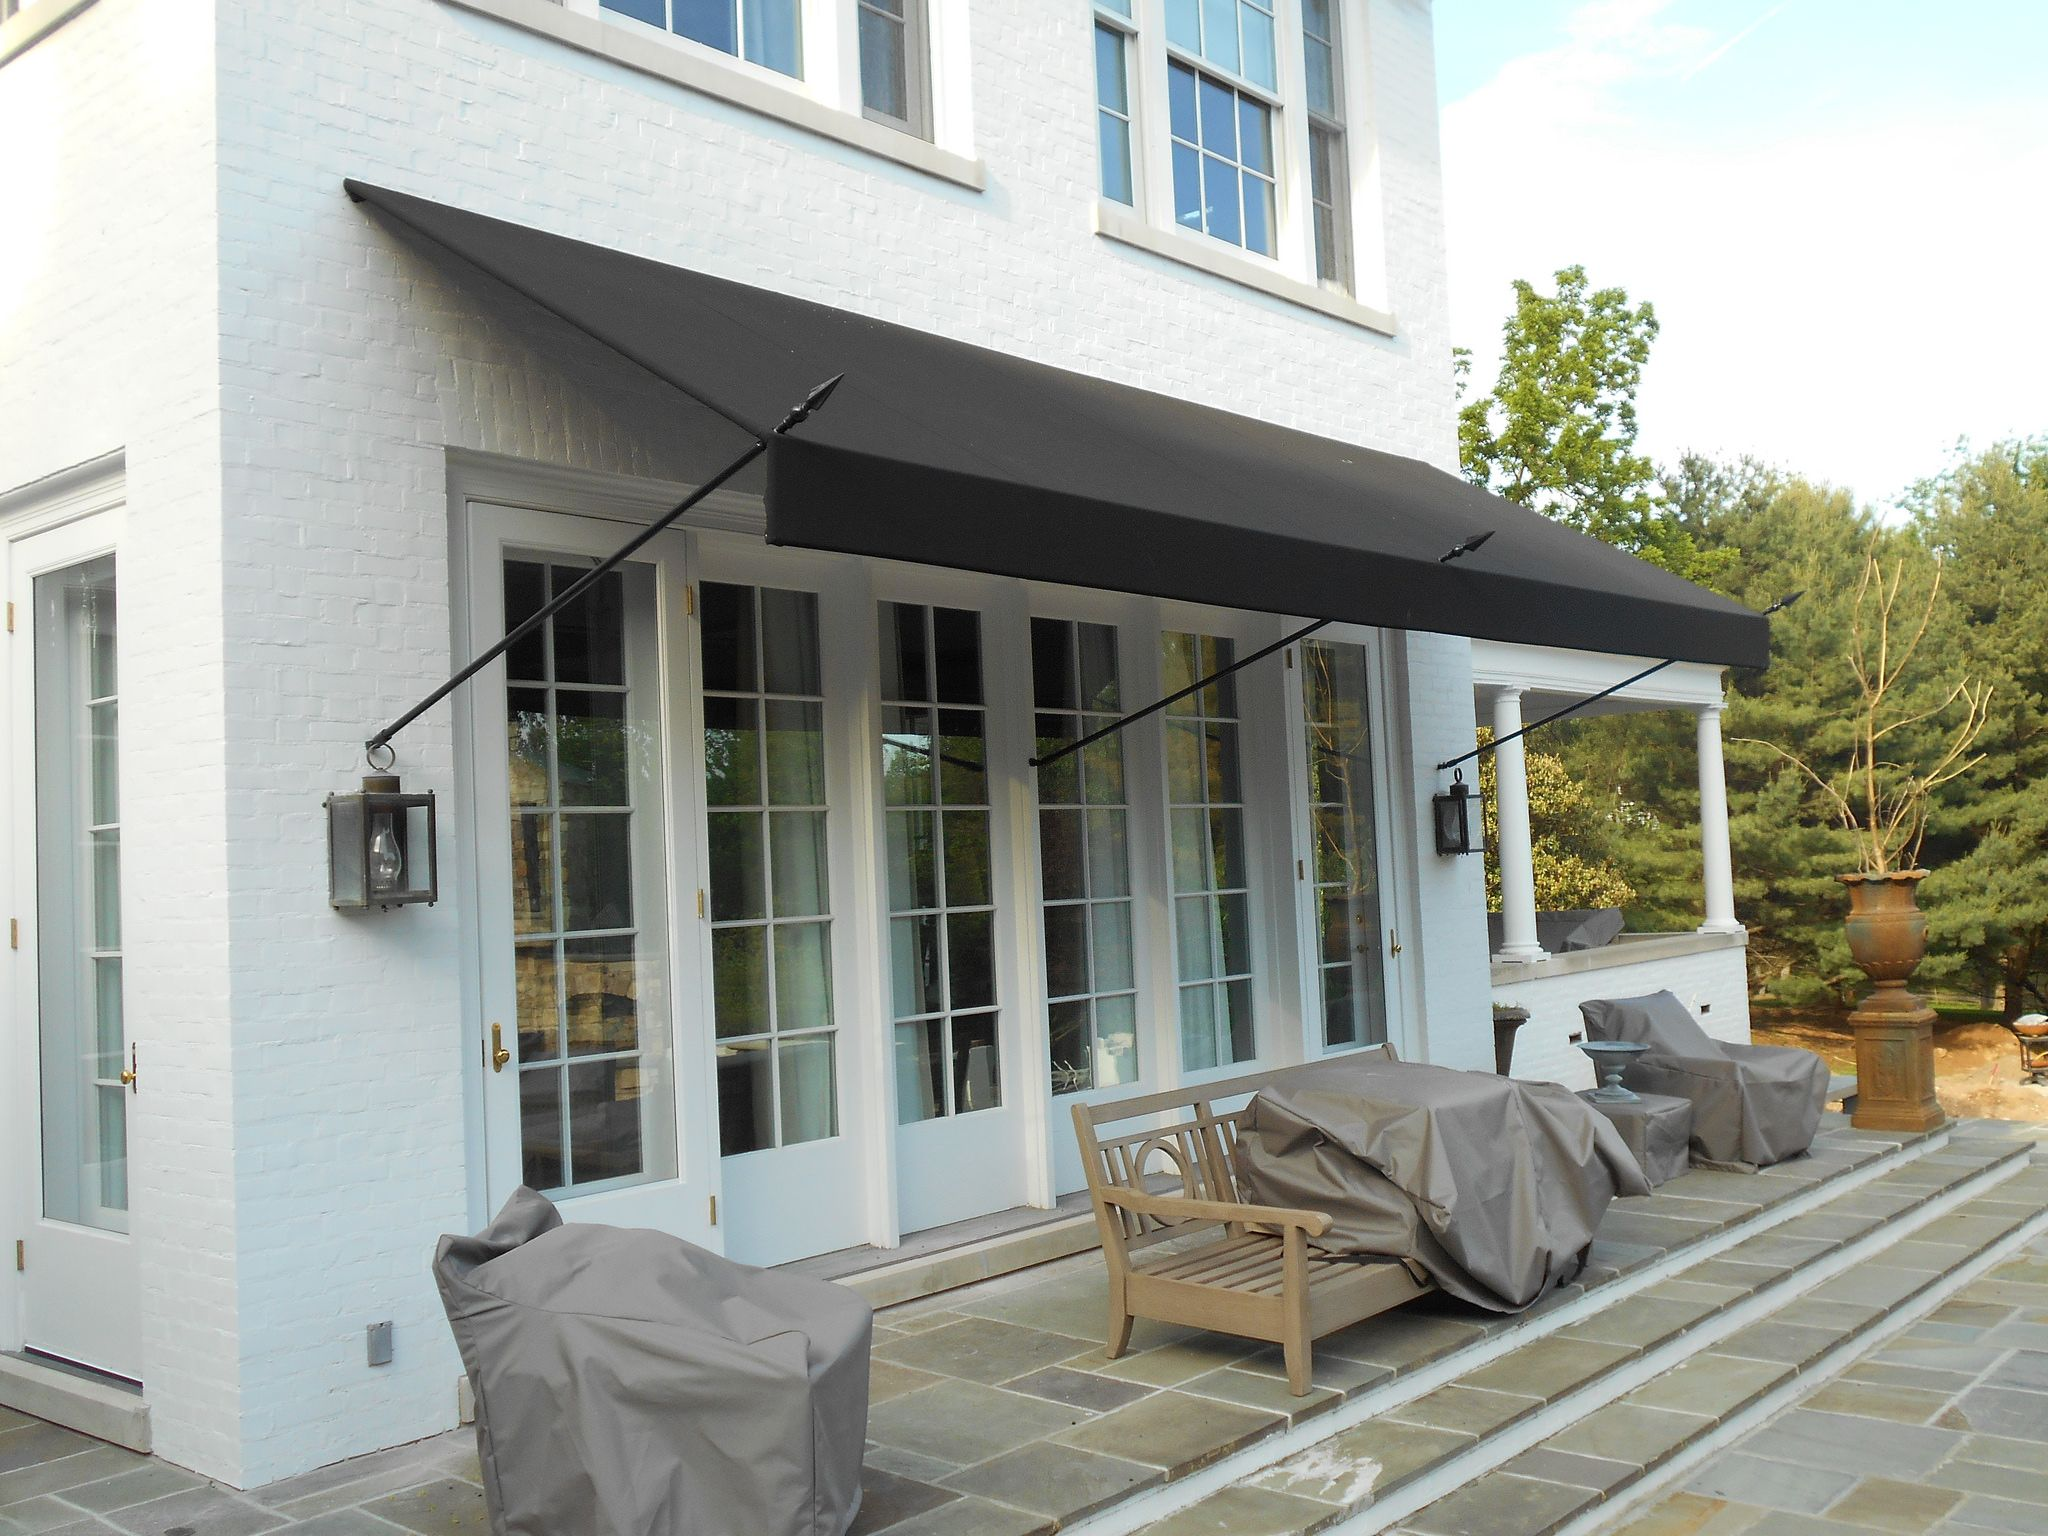 Patio Awning Side Panels Home Design Ideas and